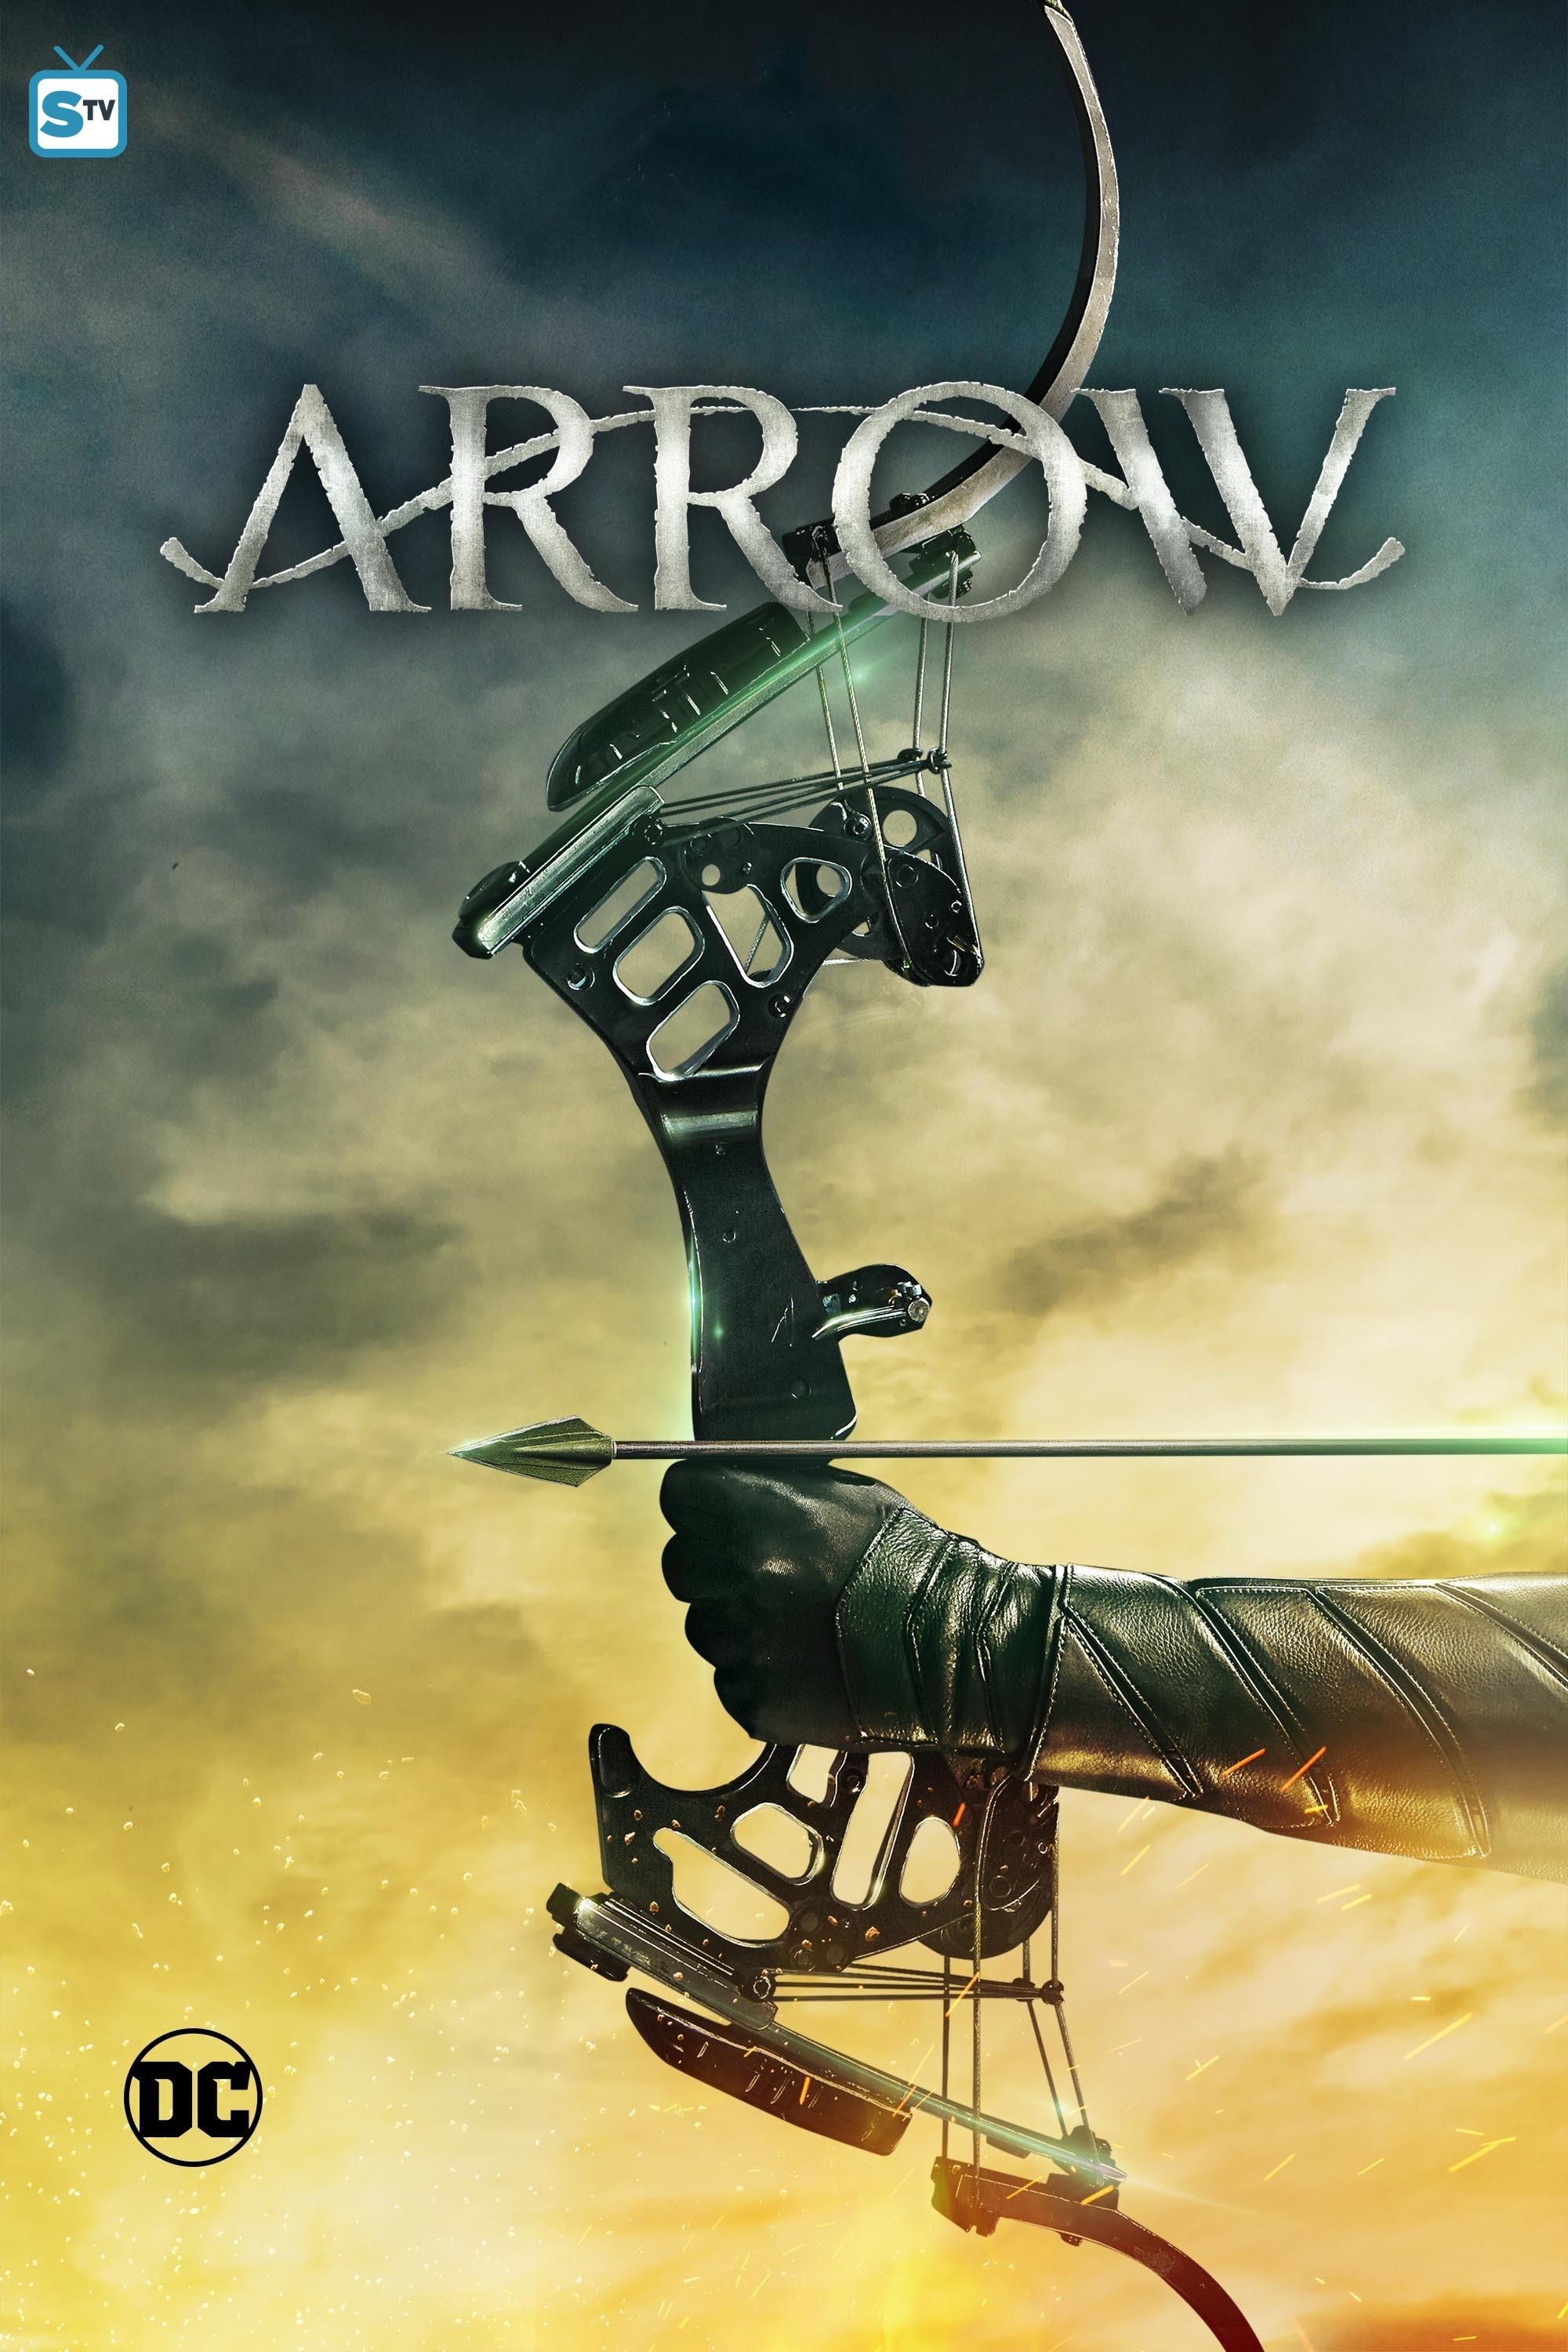 Arrow season 5 cellphone wallpaper #iphone #poster #cw